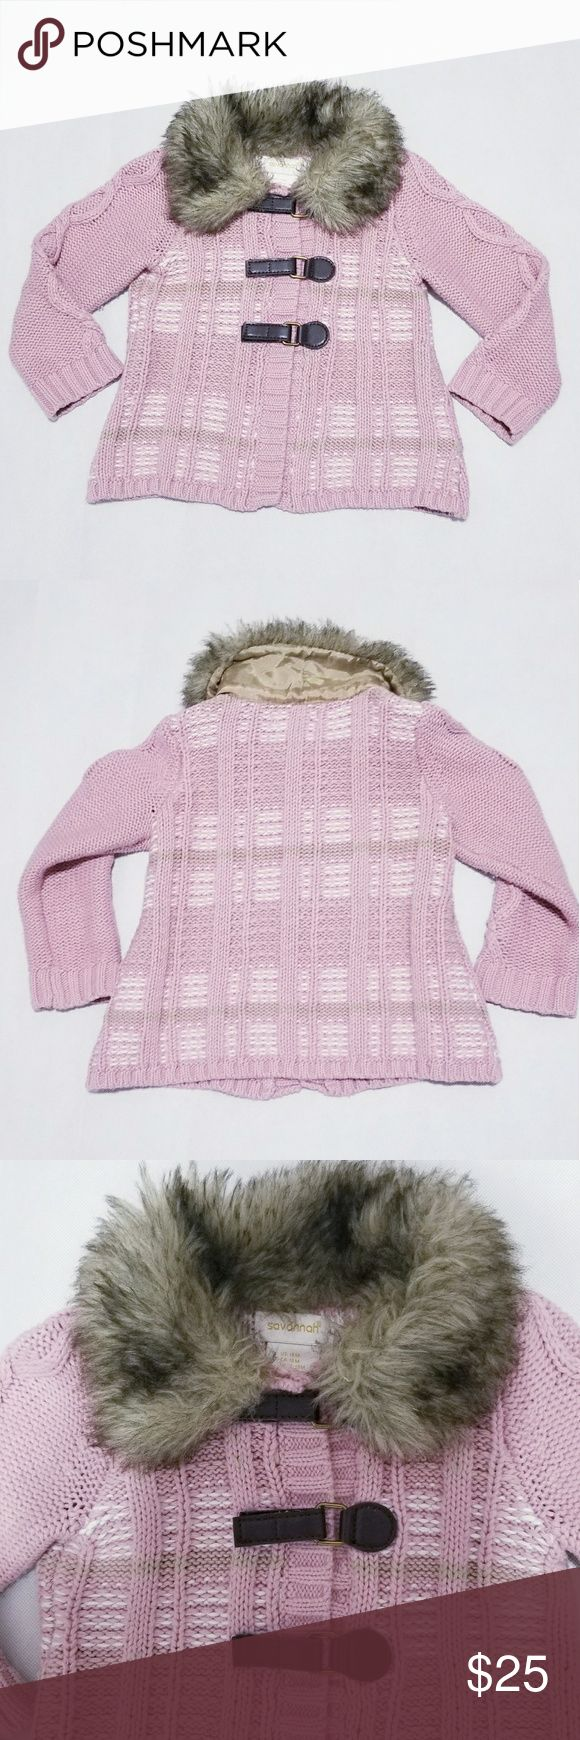 "Savannah Toddler Girl Faux Fur Coat Knit 18 mths Savannah Toddler Baby Girl Faux Fur Coat Knit Crocheted Jacket  Size 18 months toddler faux fur faux leather buckle closure  crocheted knit  just beautiful and gorgeaous  your baby will get lots of compliment   SIZE: 18 months chest approx 22"" sleeve length approx 13"" Length approx 13""  excellent used condition besides faux fur   60% cotton 40% acrylic   COLOR: Pink White Brown    Smoke free and pet free home Savannah Jackets & Coats"